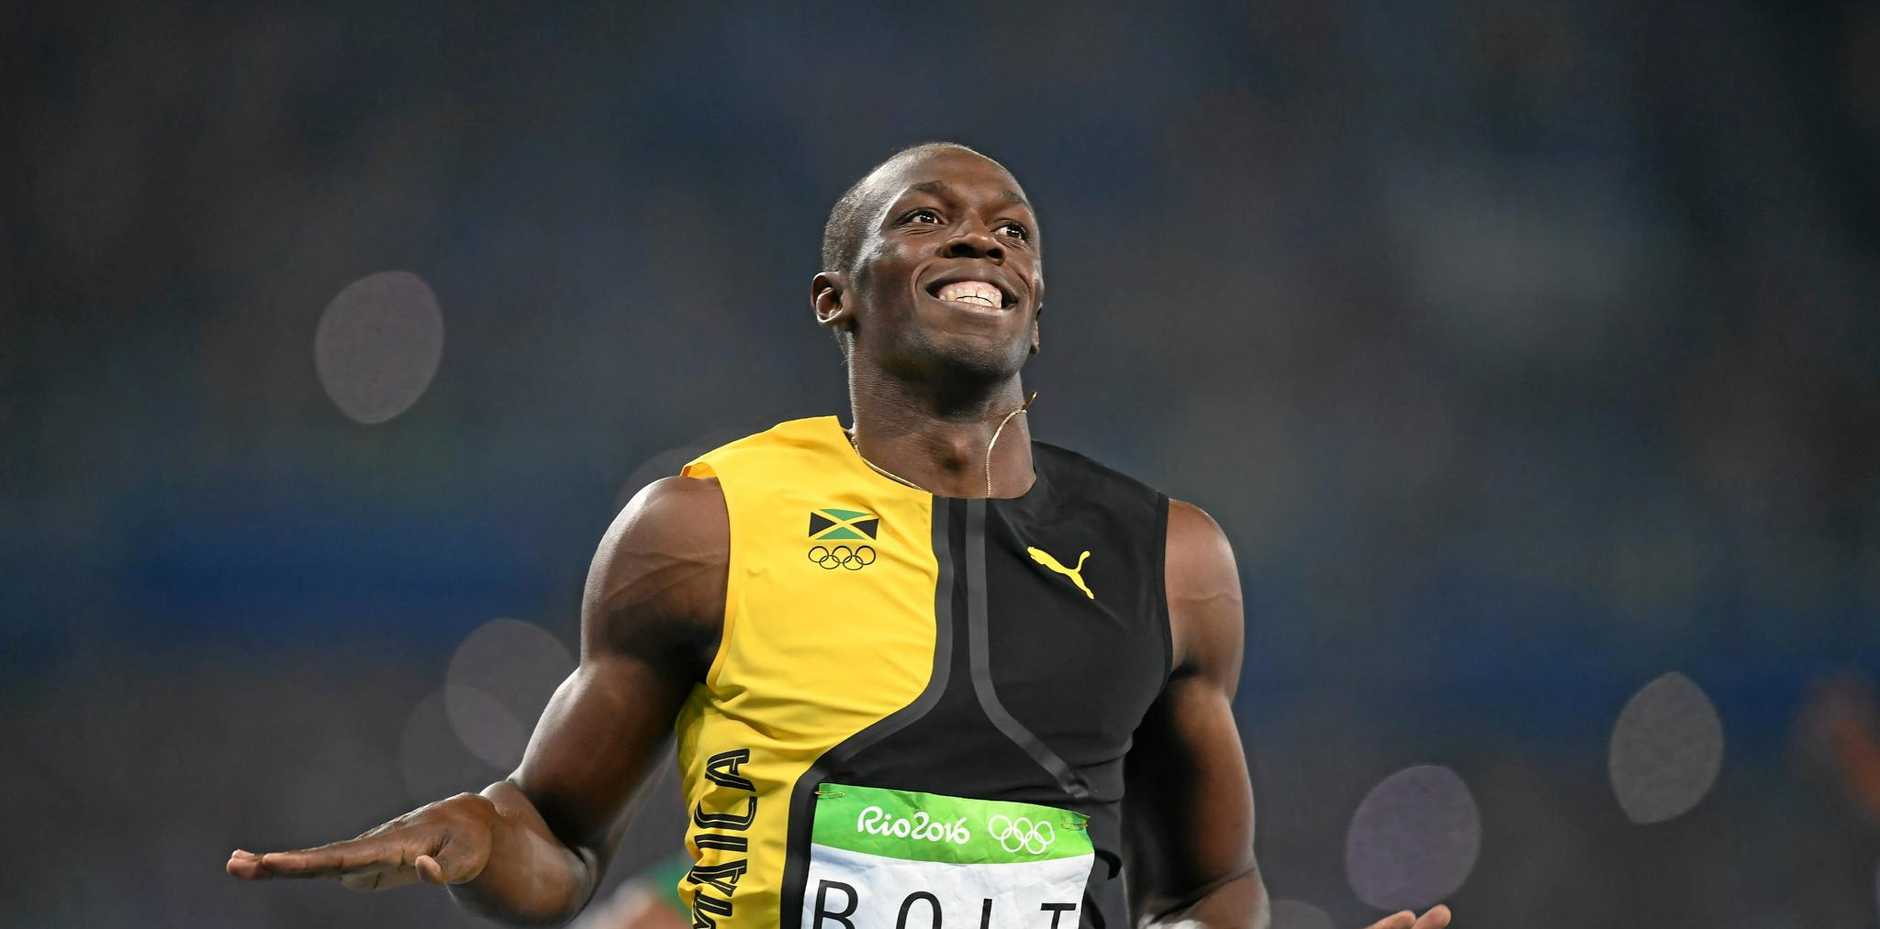 Usain Bolt is one of few Olympians whose endorsements allow him to train full-time.